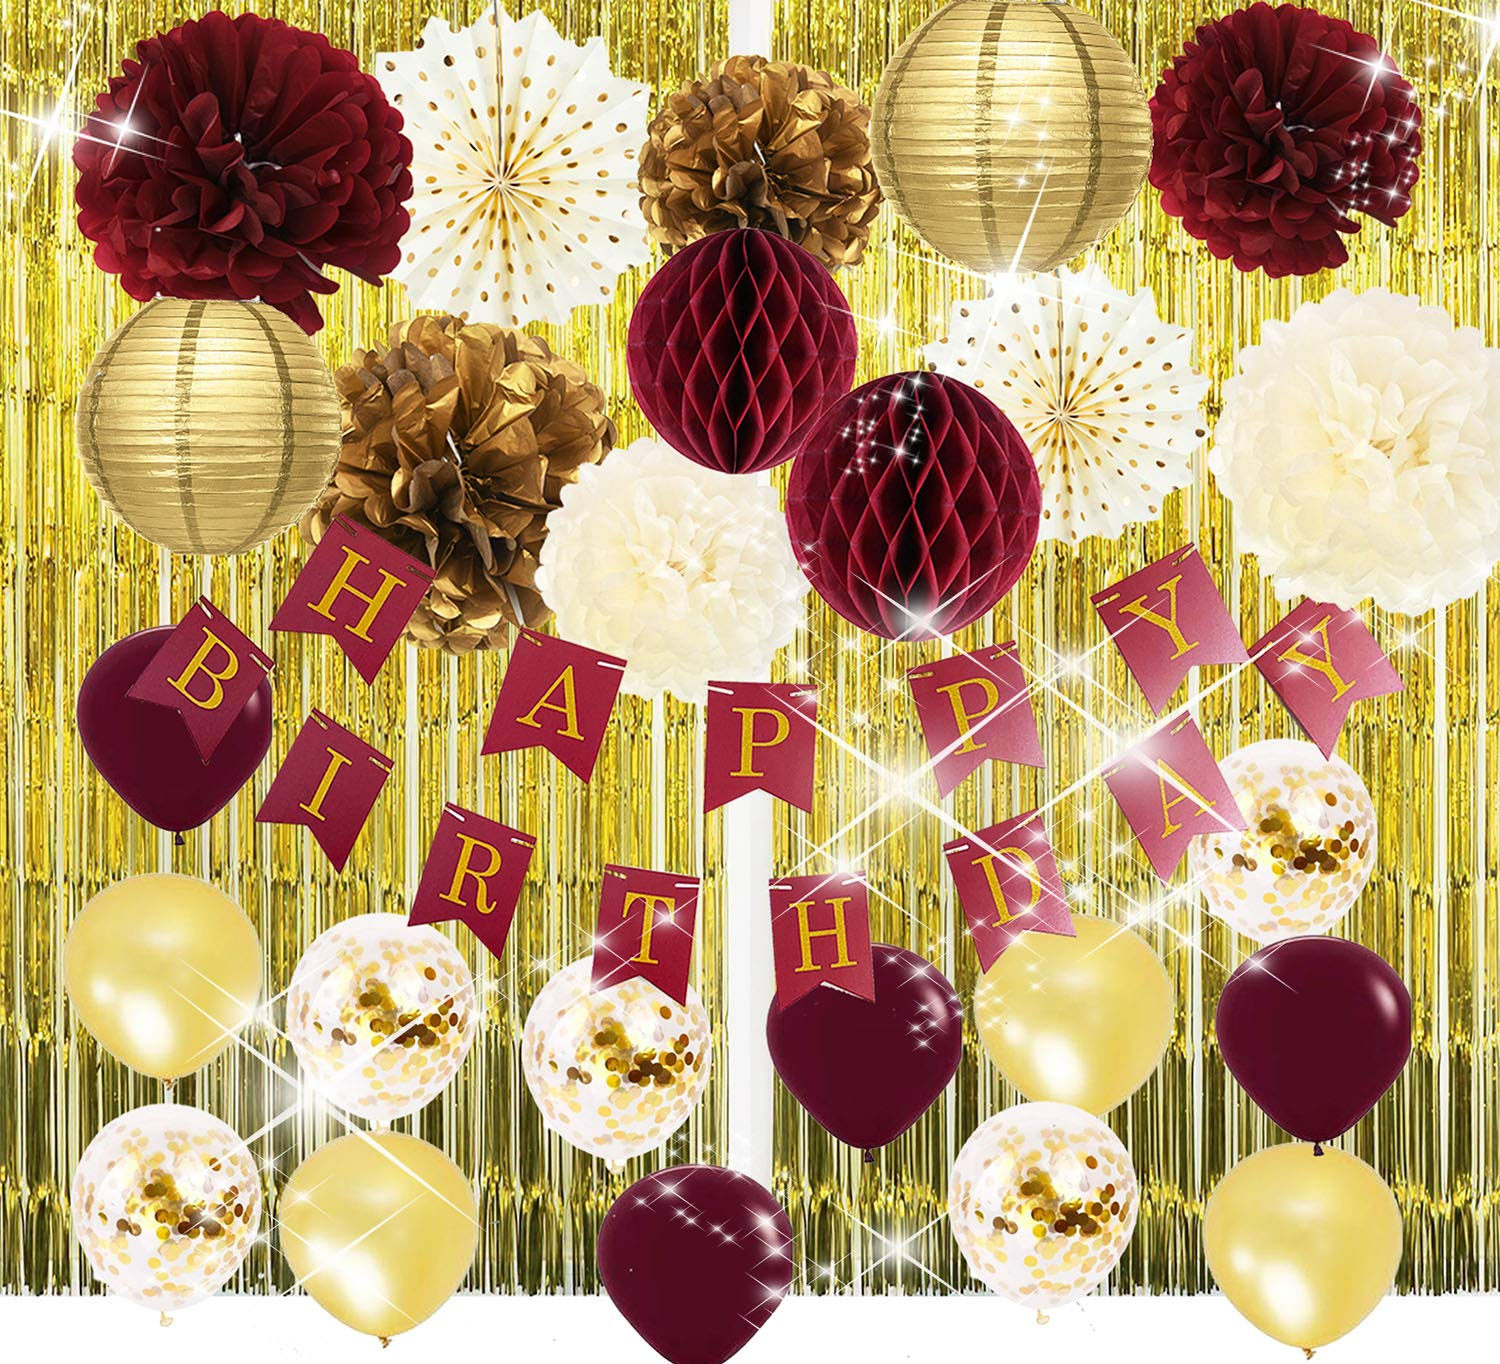 Burgundy Gold Birthday Party Decorations Burgundy Gold Happy Birthday Banner Glold Foil Curtain Ballons Polka Dot Fans for Burgundy Fall Birthday Party Supplies/Women 30th Birthday Decorations by Qian's Party